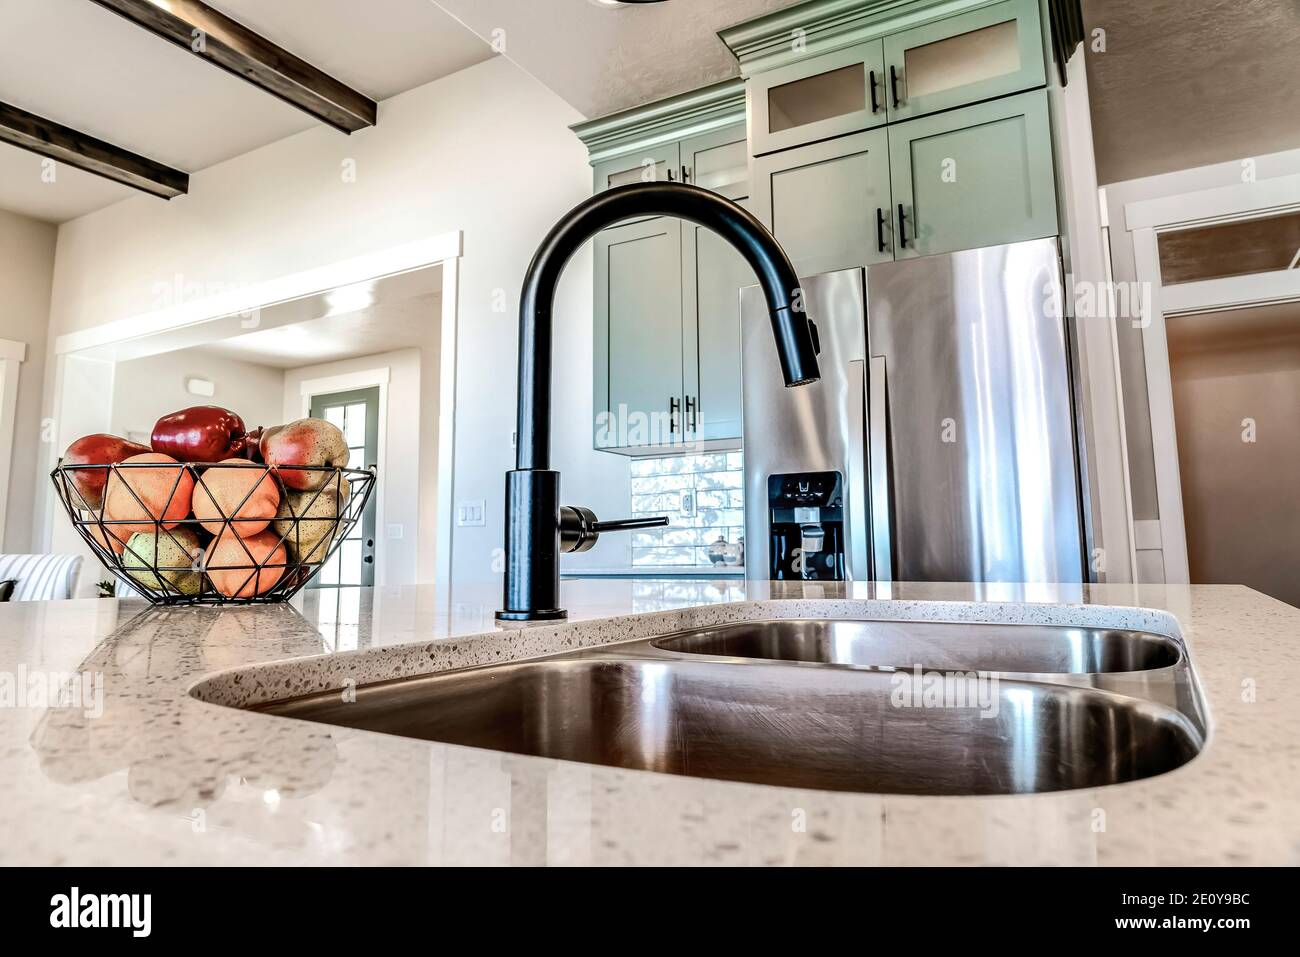 Kitchen Island With Black Faucet And Stainless Steel Sink Against Refrigerator Stock Photo Alamy